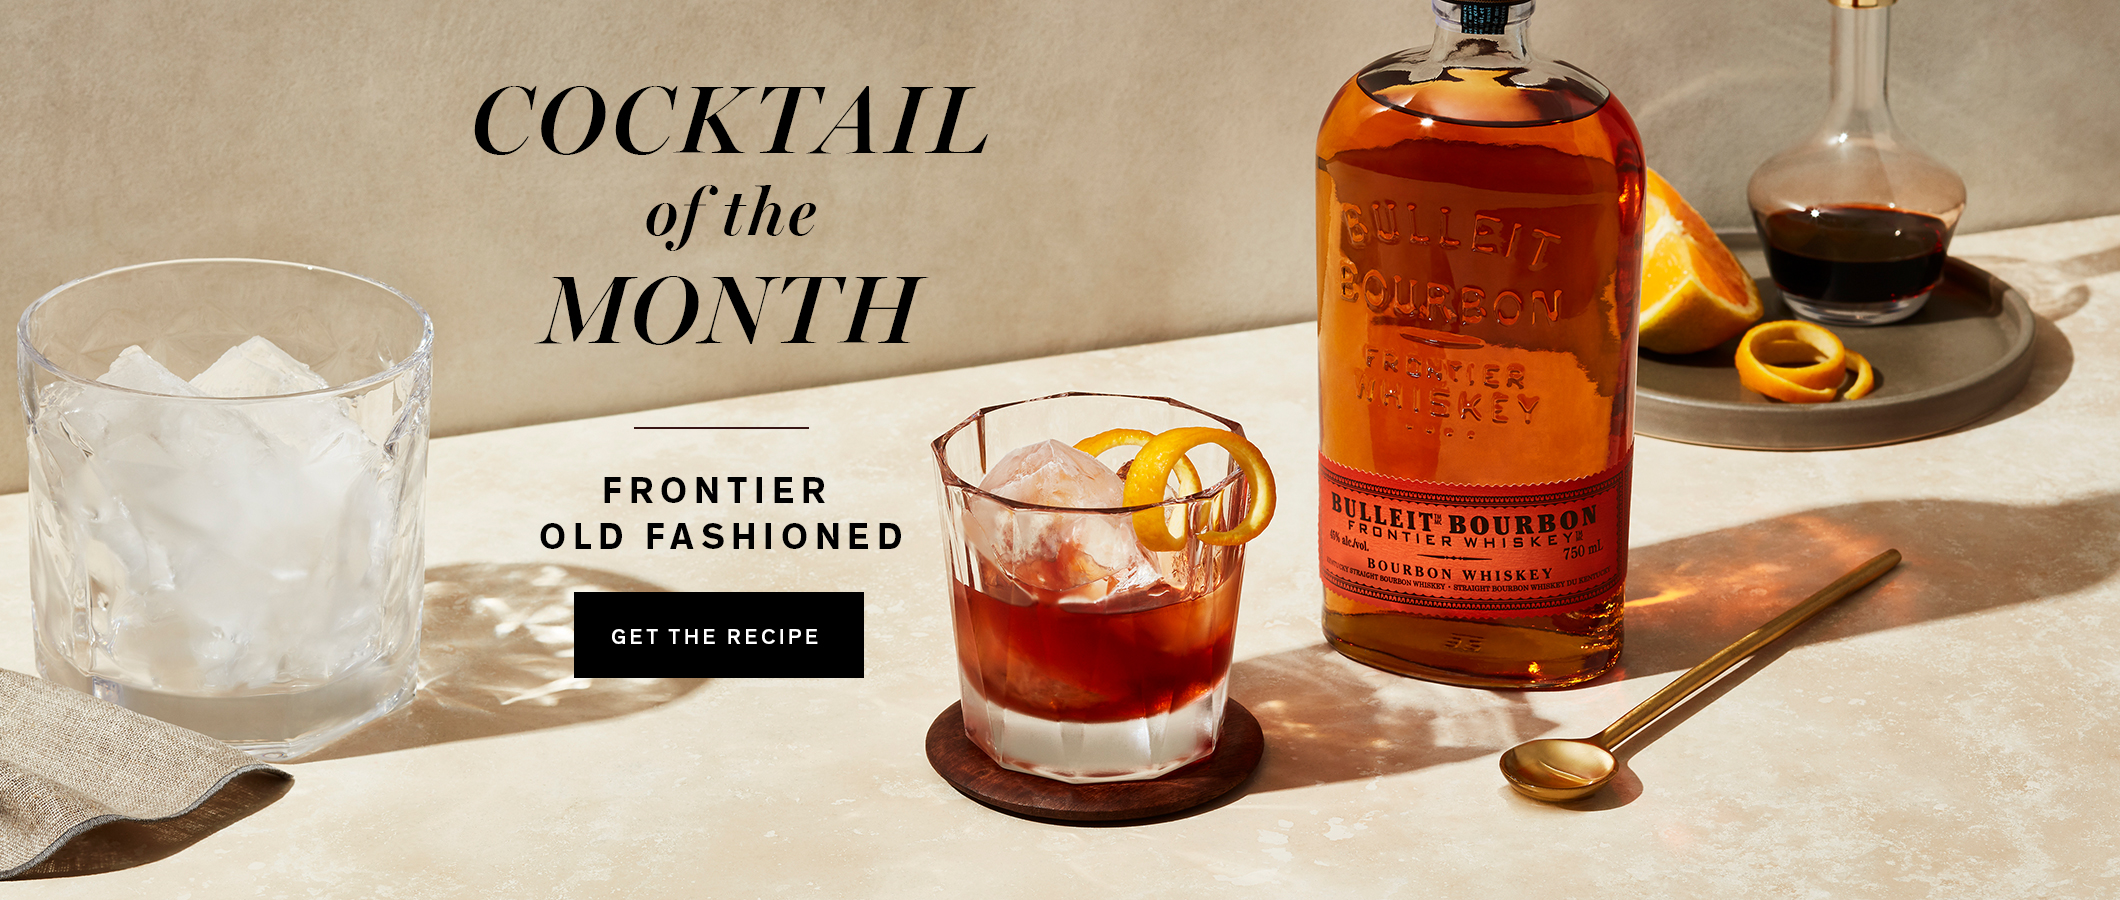 Cocktail of the Month  Frontier Old Fashioned. Get the Recipe